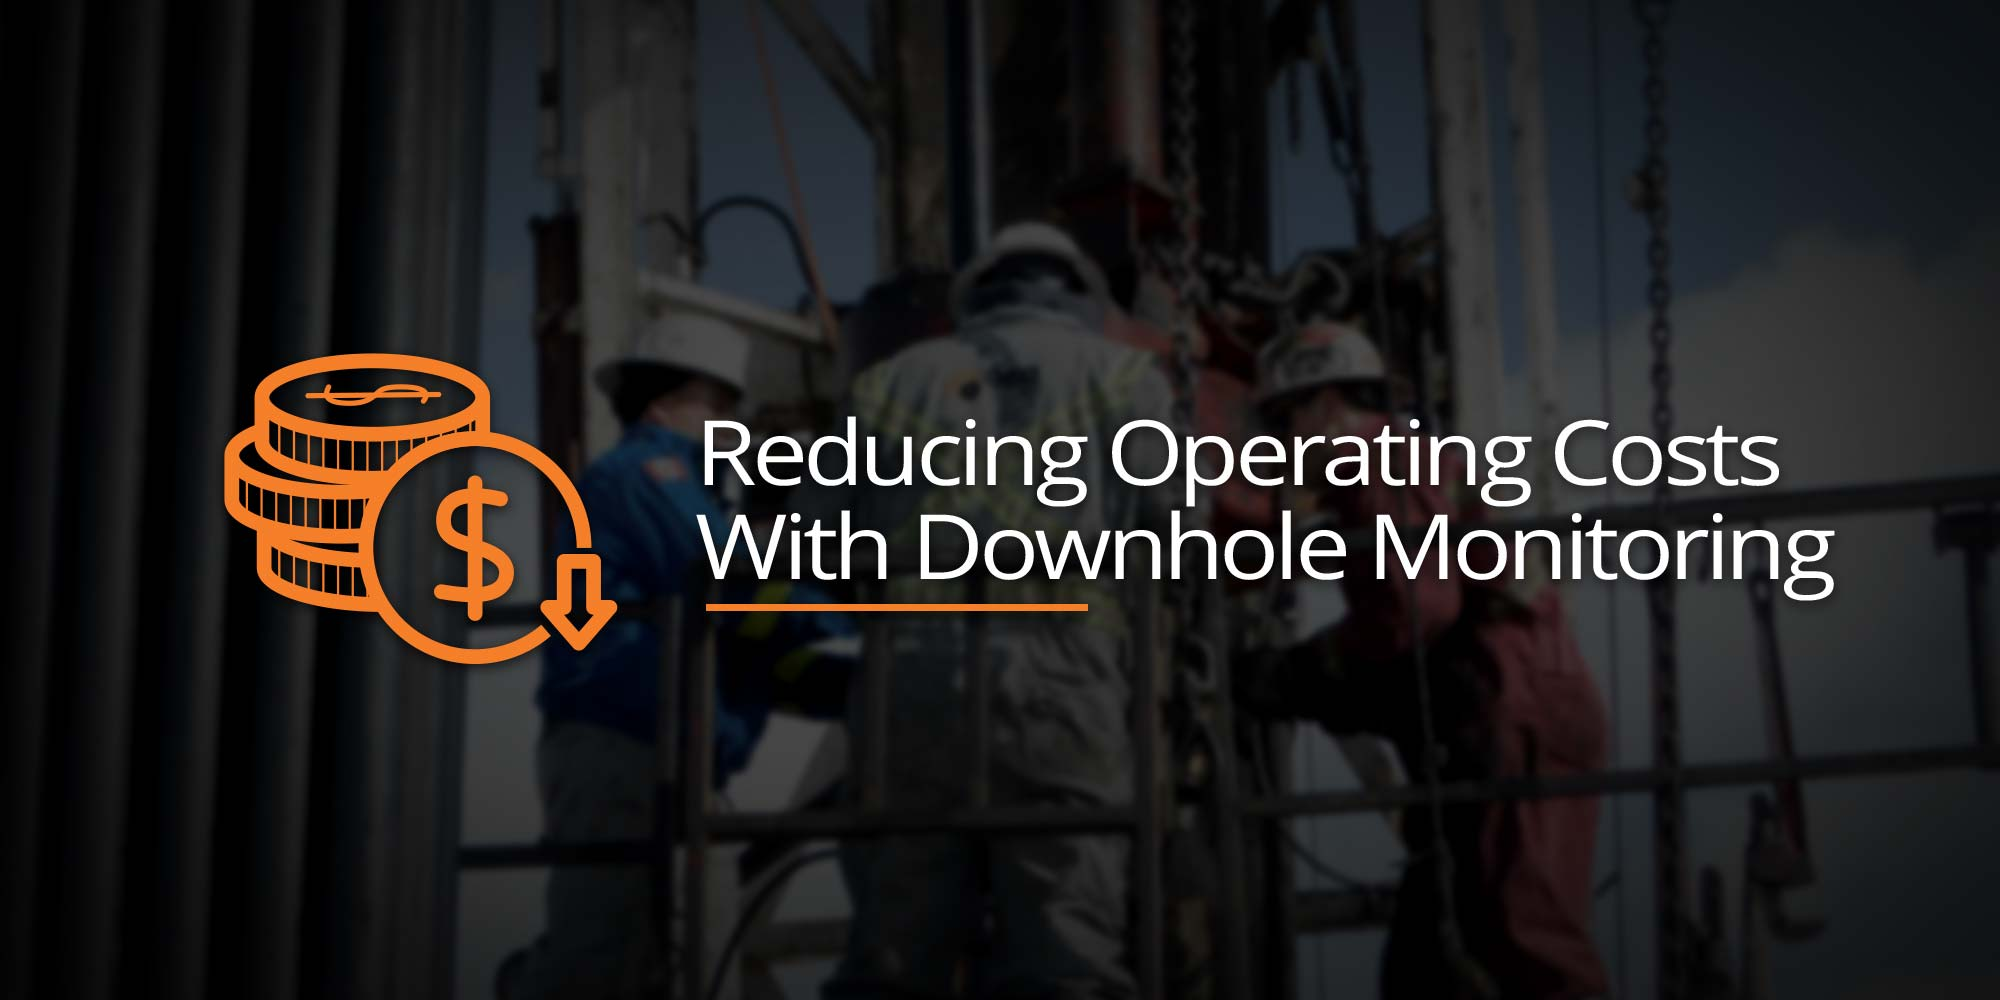 Reducing Operating Costs With Downhole Monitoring